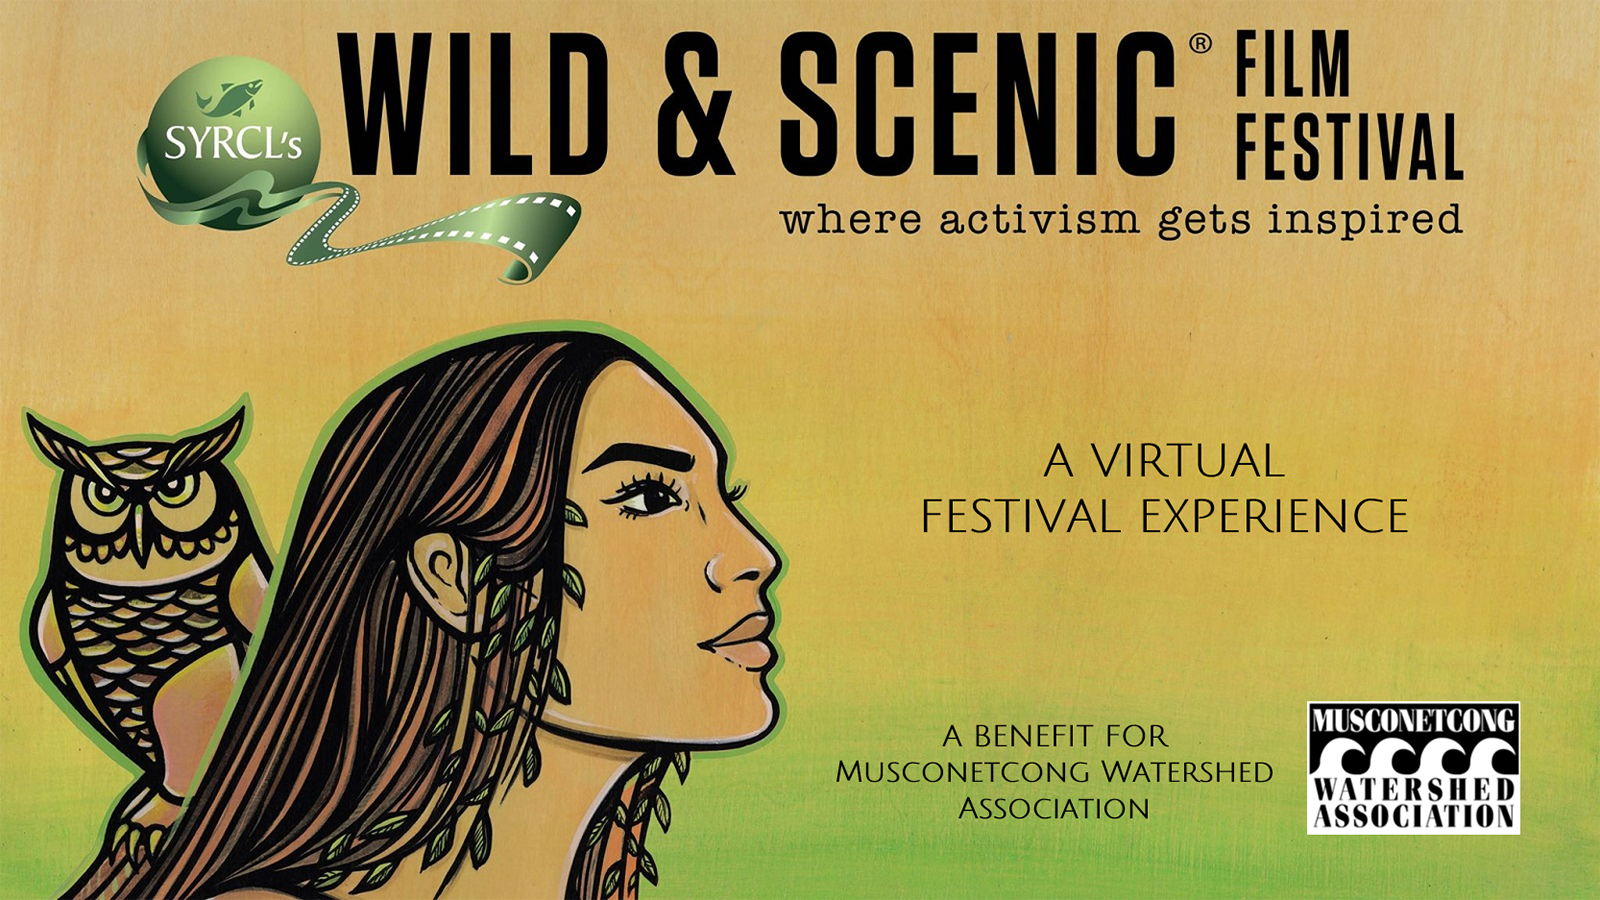 Musconetcong Watershed Association Presents SYRCL's Wild & Scenic Film Festival On Tour